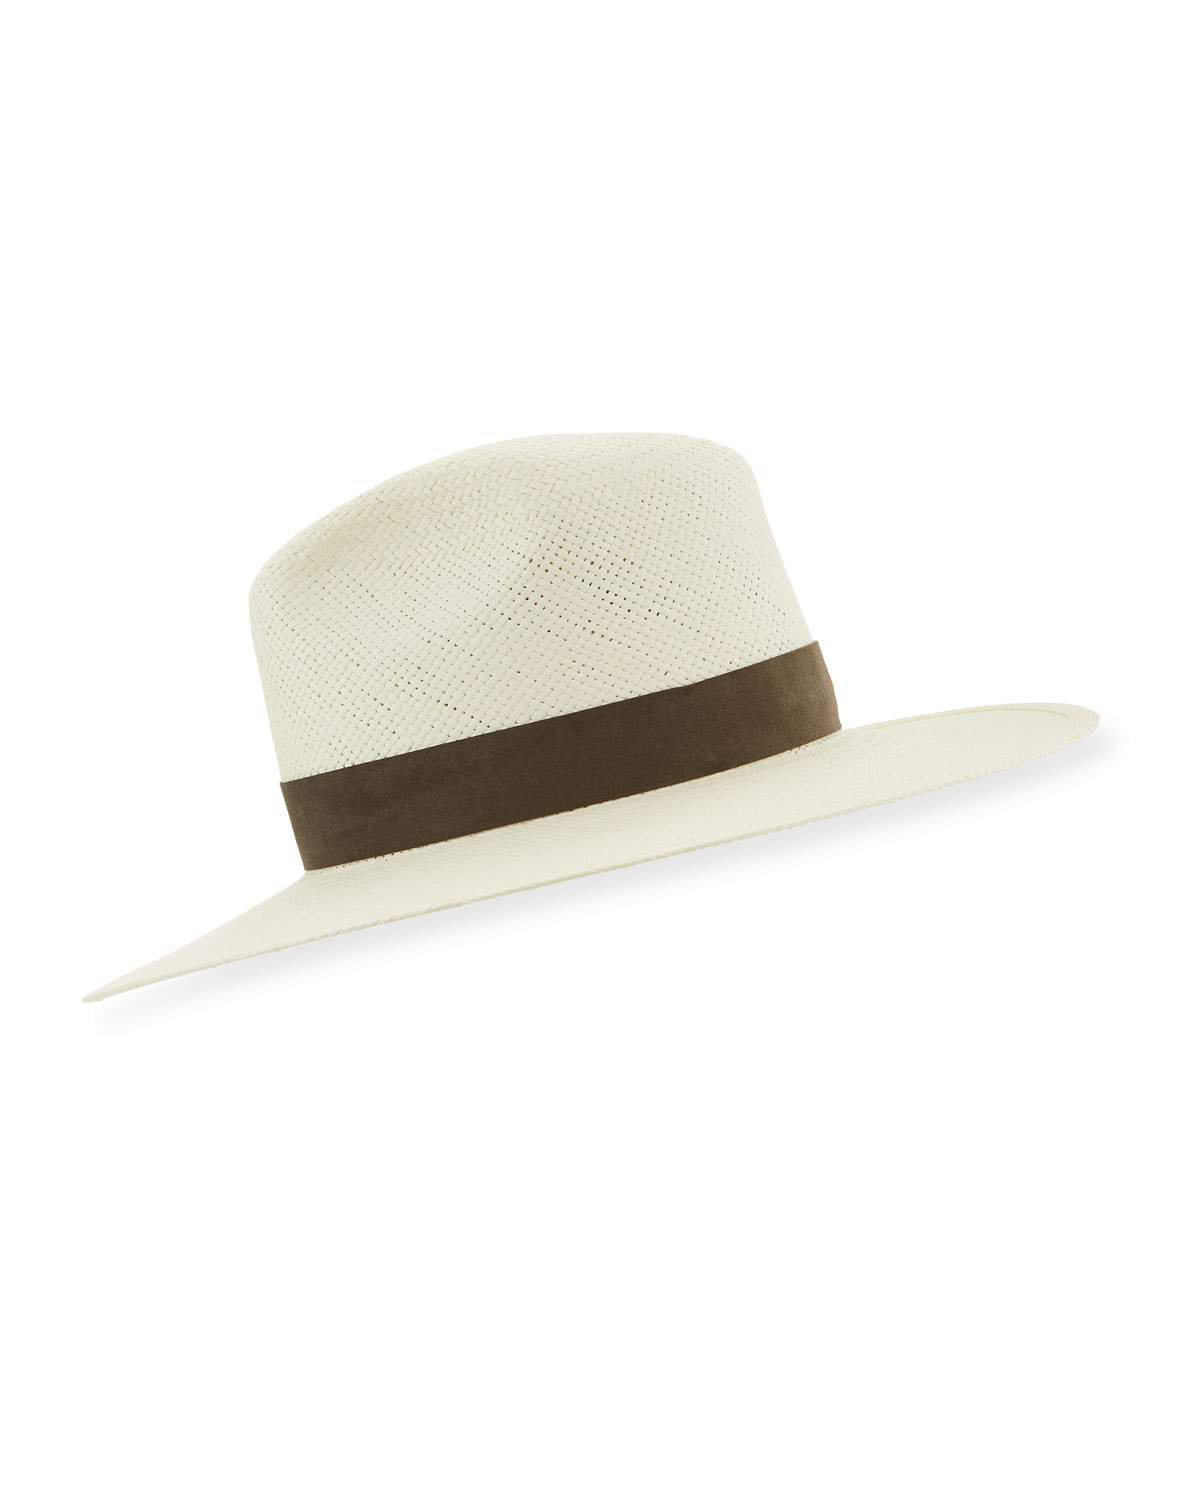 ff8990c5a54 Janessa Leone Marcell Packable Straw Fedora Hat In Bleach | ModeSens